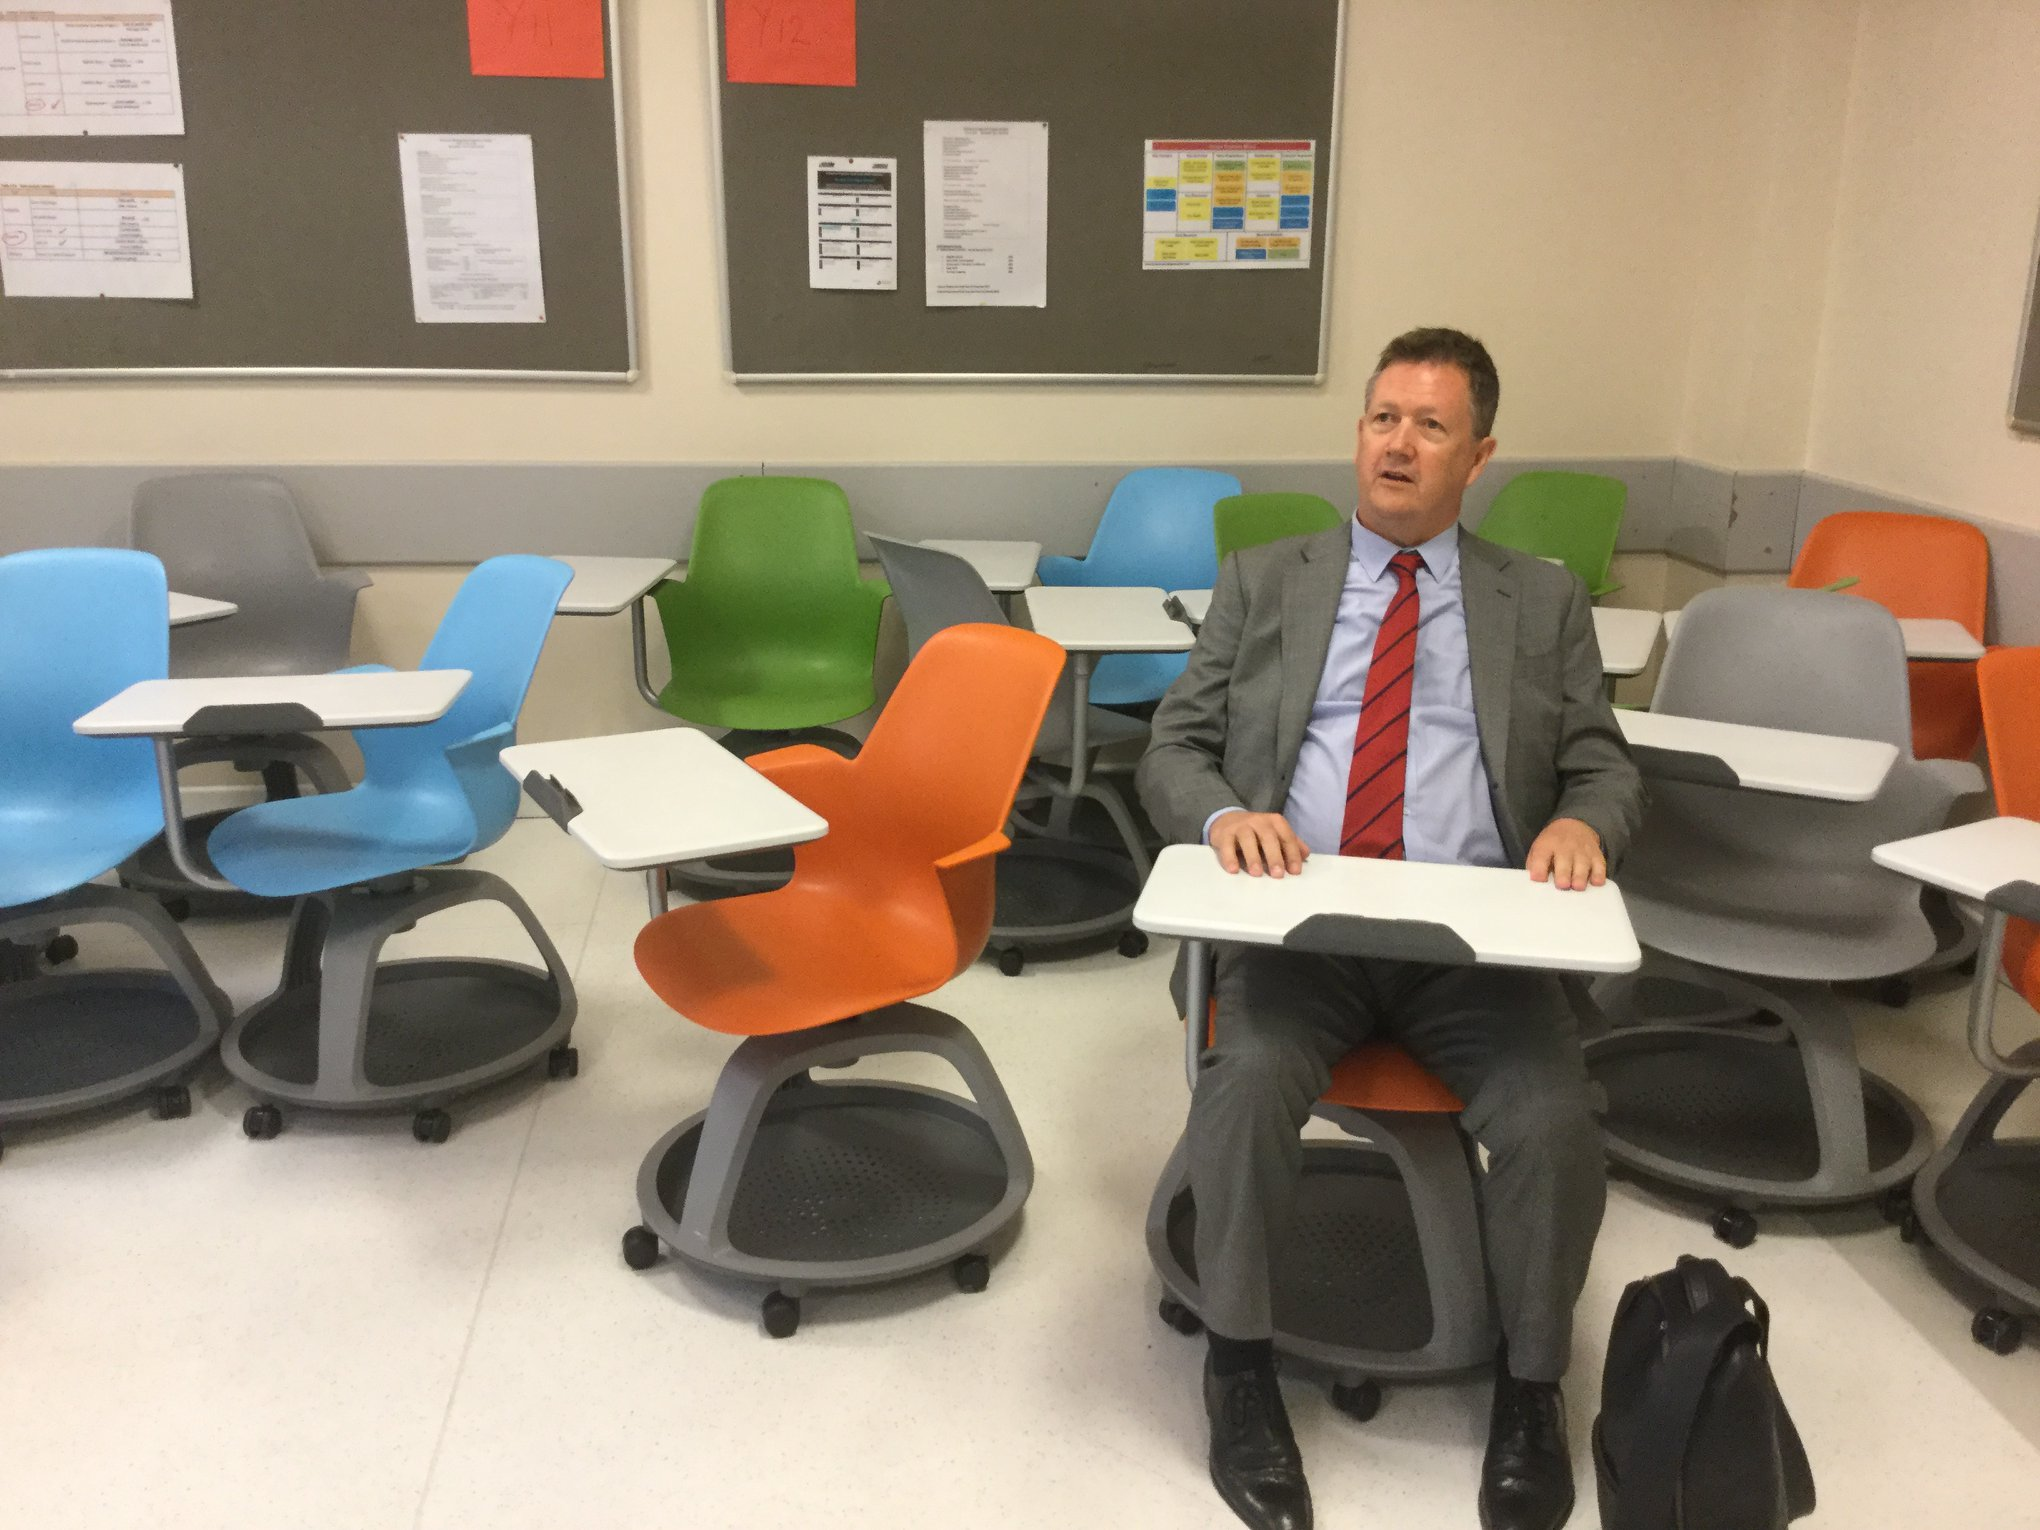 Bill tries out a colorful student desk at The KOC School, Istanbul